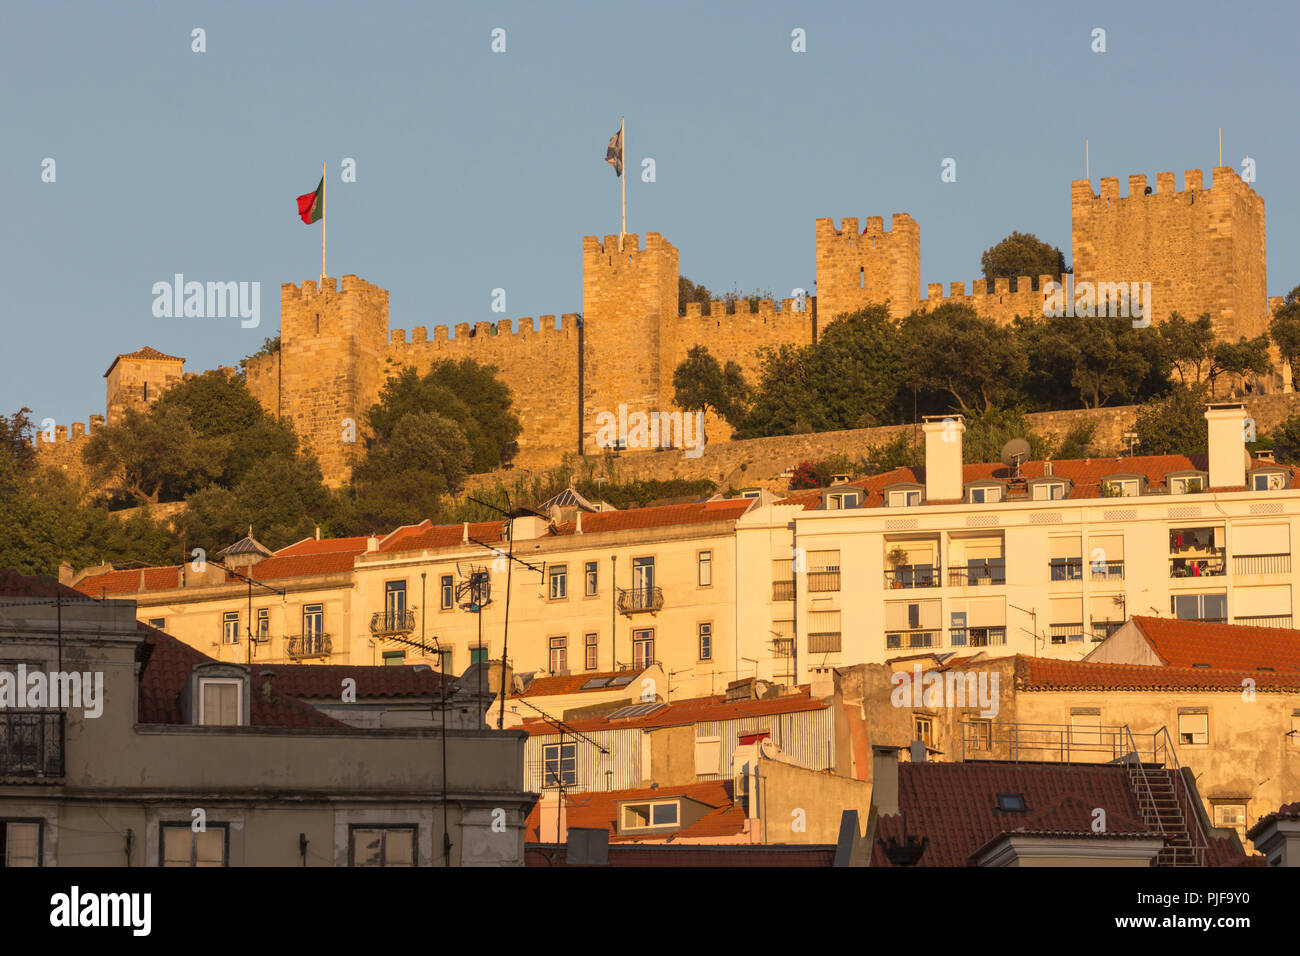 Lisbon, Portugal. Castelo de Sao Jorge seen from Praca da Figueira.  Castle of St George seen from the Figueira Square. - Stock Image